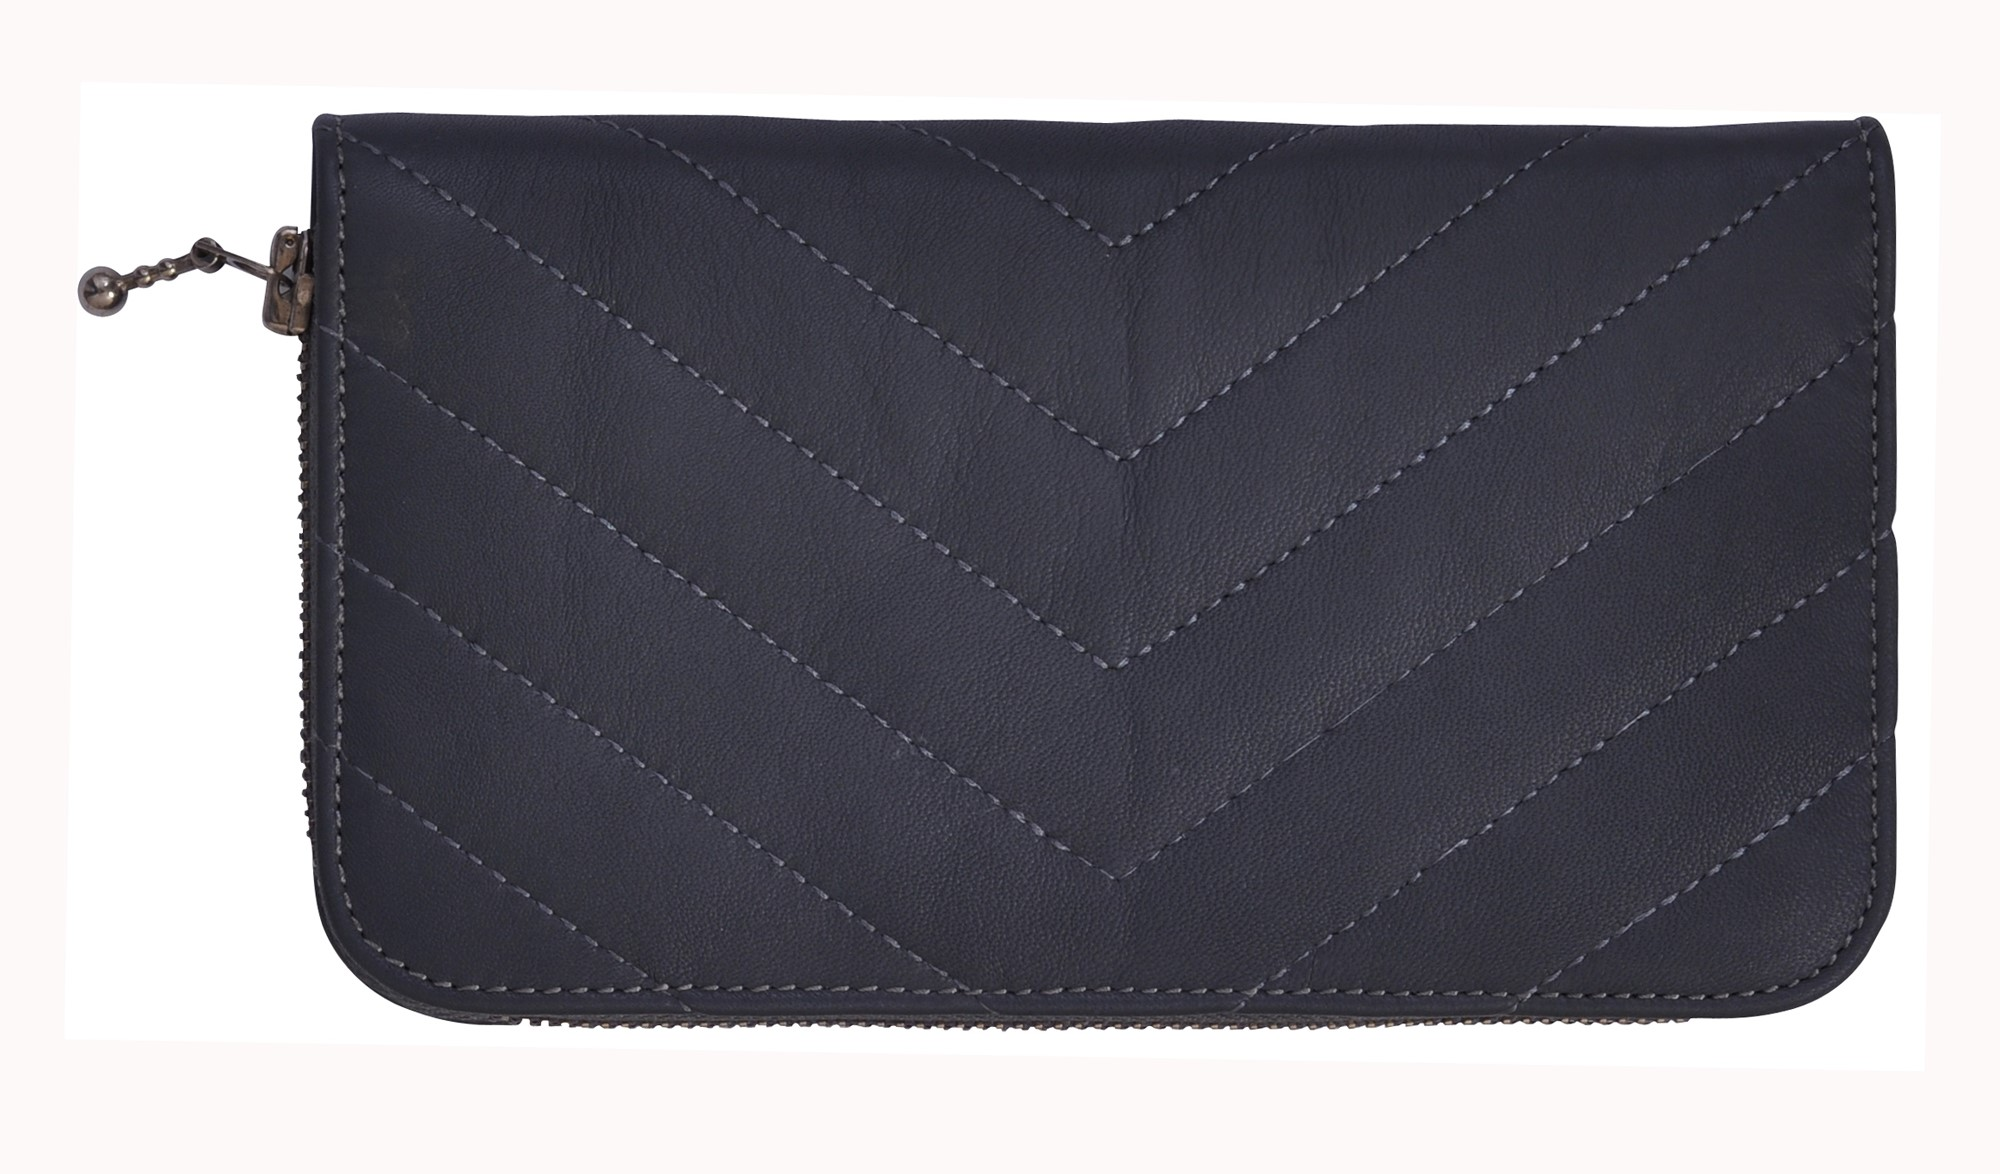 ladies_Black_wallets_purses_01